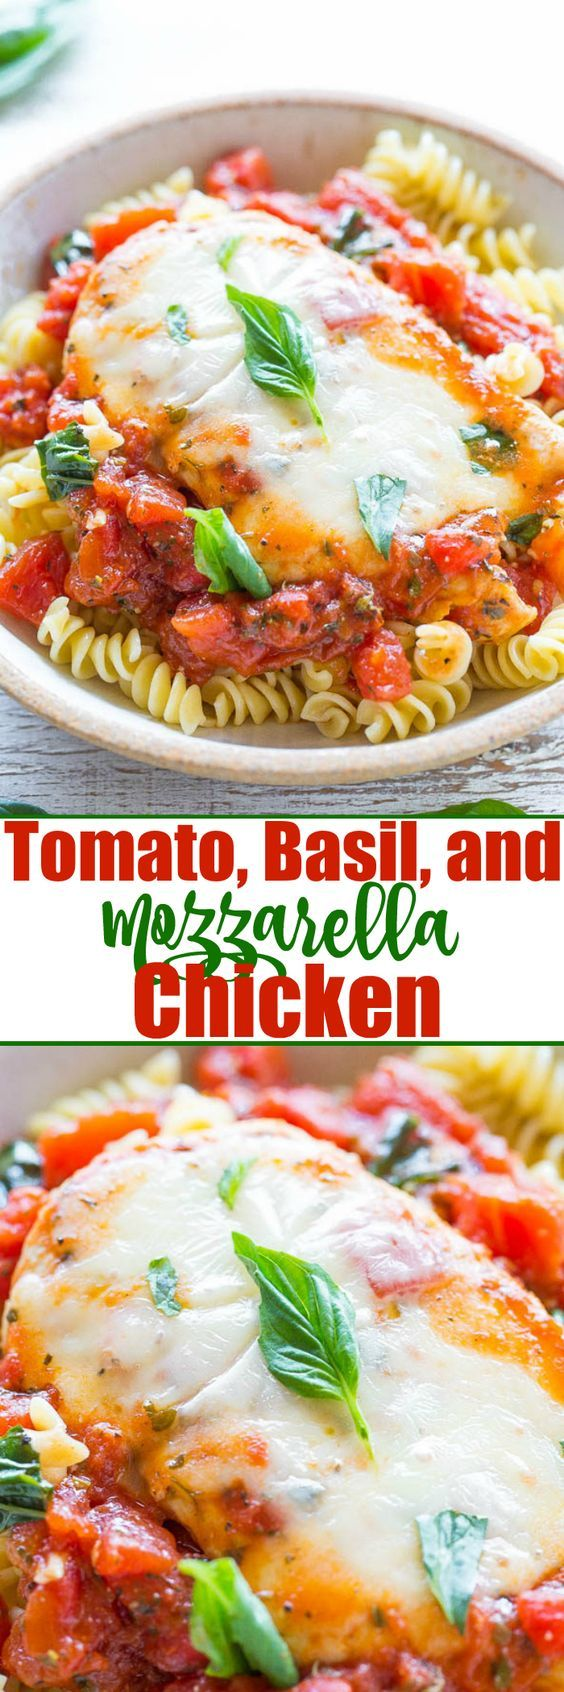 Tomato Basil and Mozzarella Chicken A healthier twist on chicken parmesan because there's NO breaded chicken!! Easy ready in 20 minutes and loaded with FLAVOR!! A guaranteed hit that'll be in your regular dinner rotation! Great for summer parties!